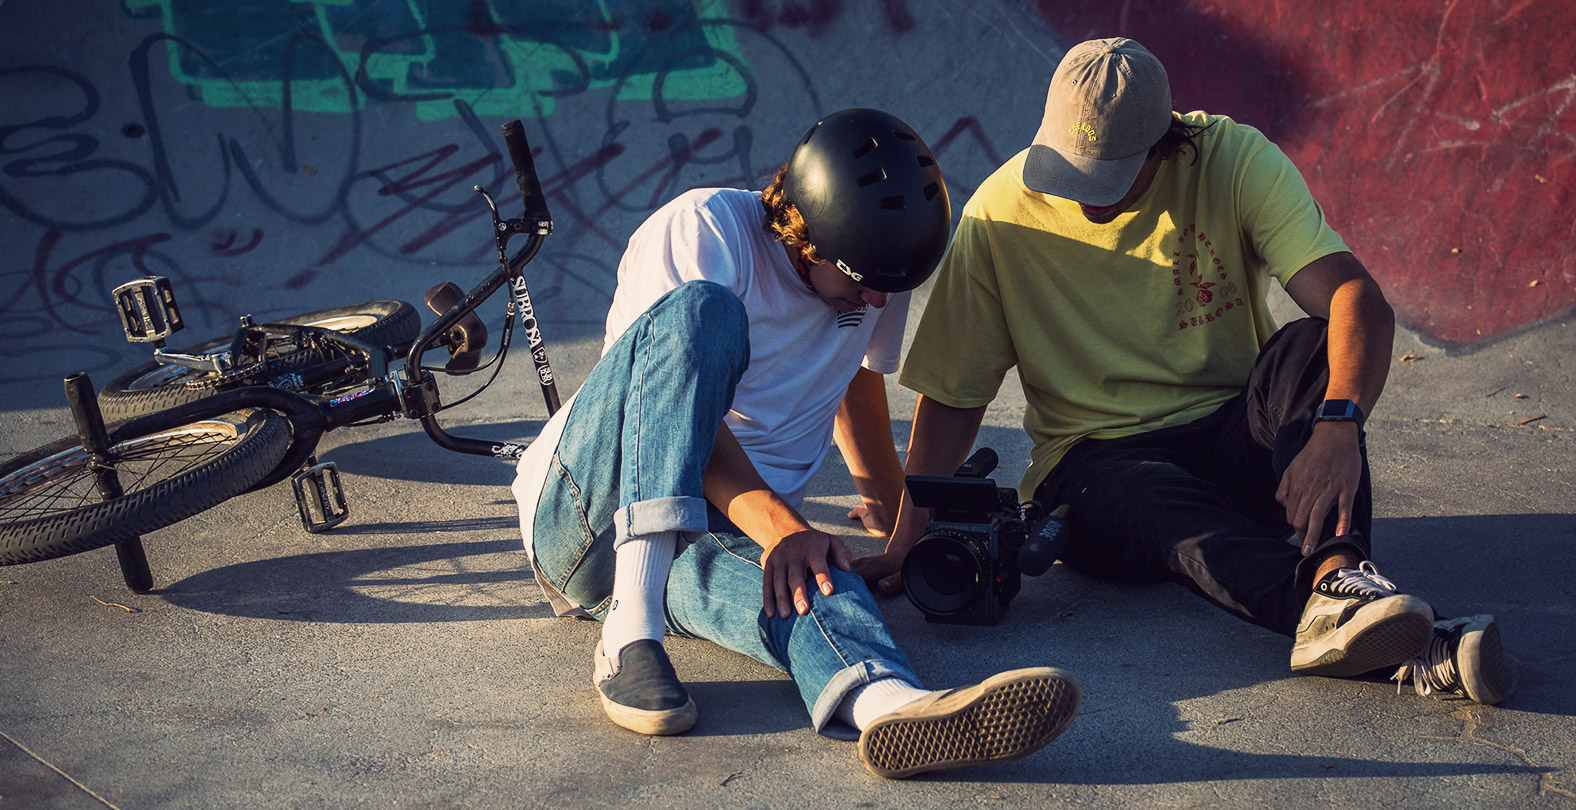 bmx rider and Filmer checking the footage